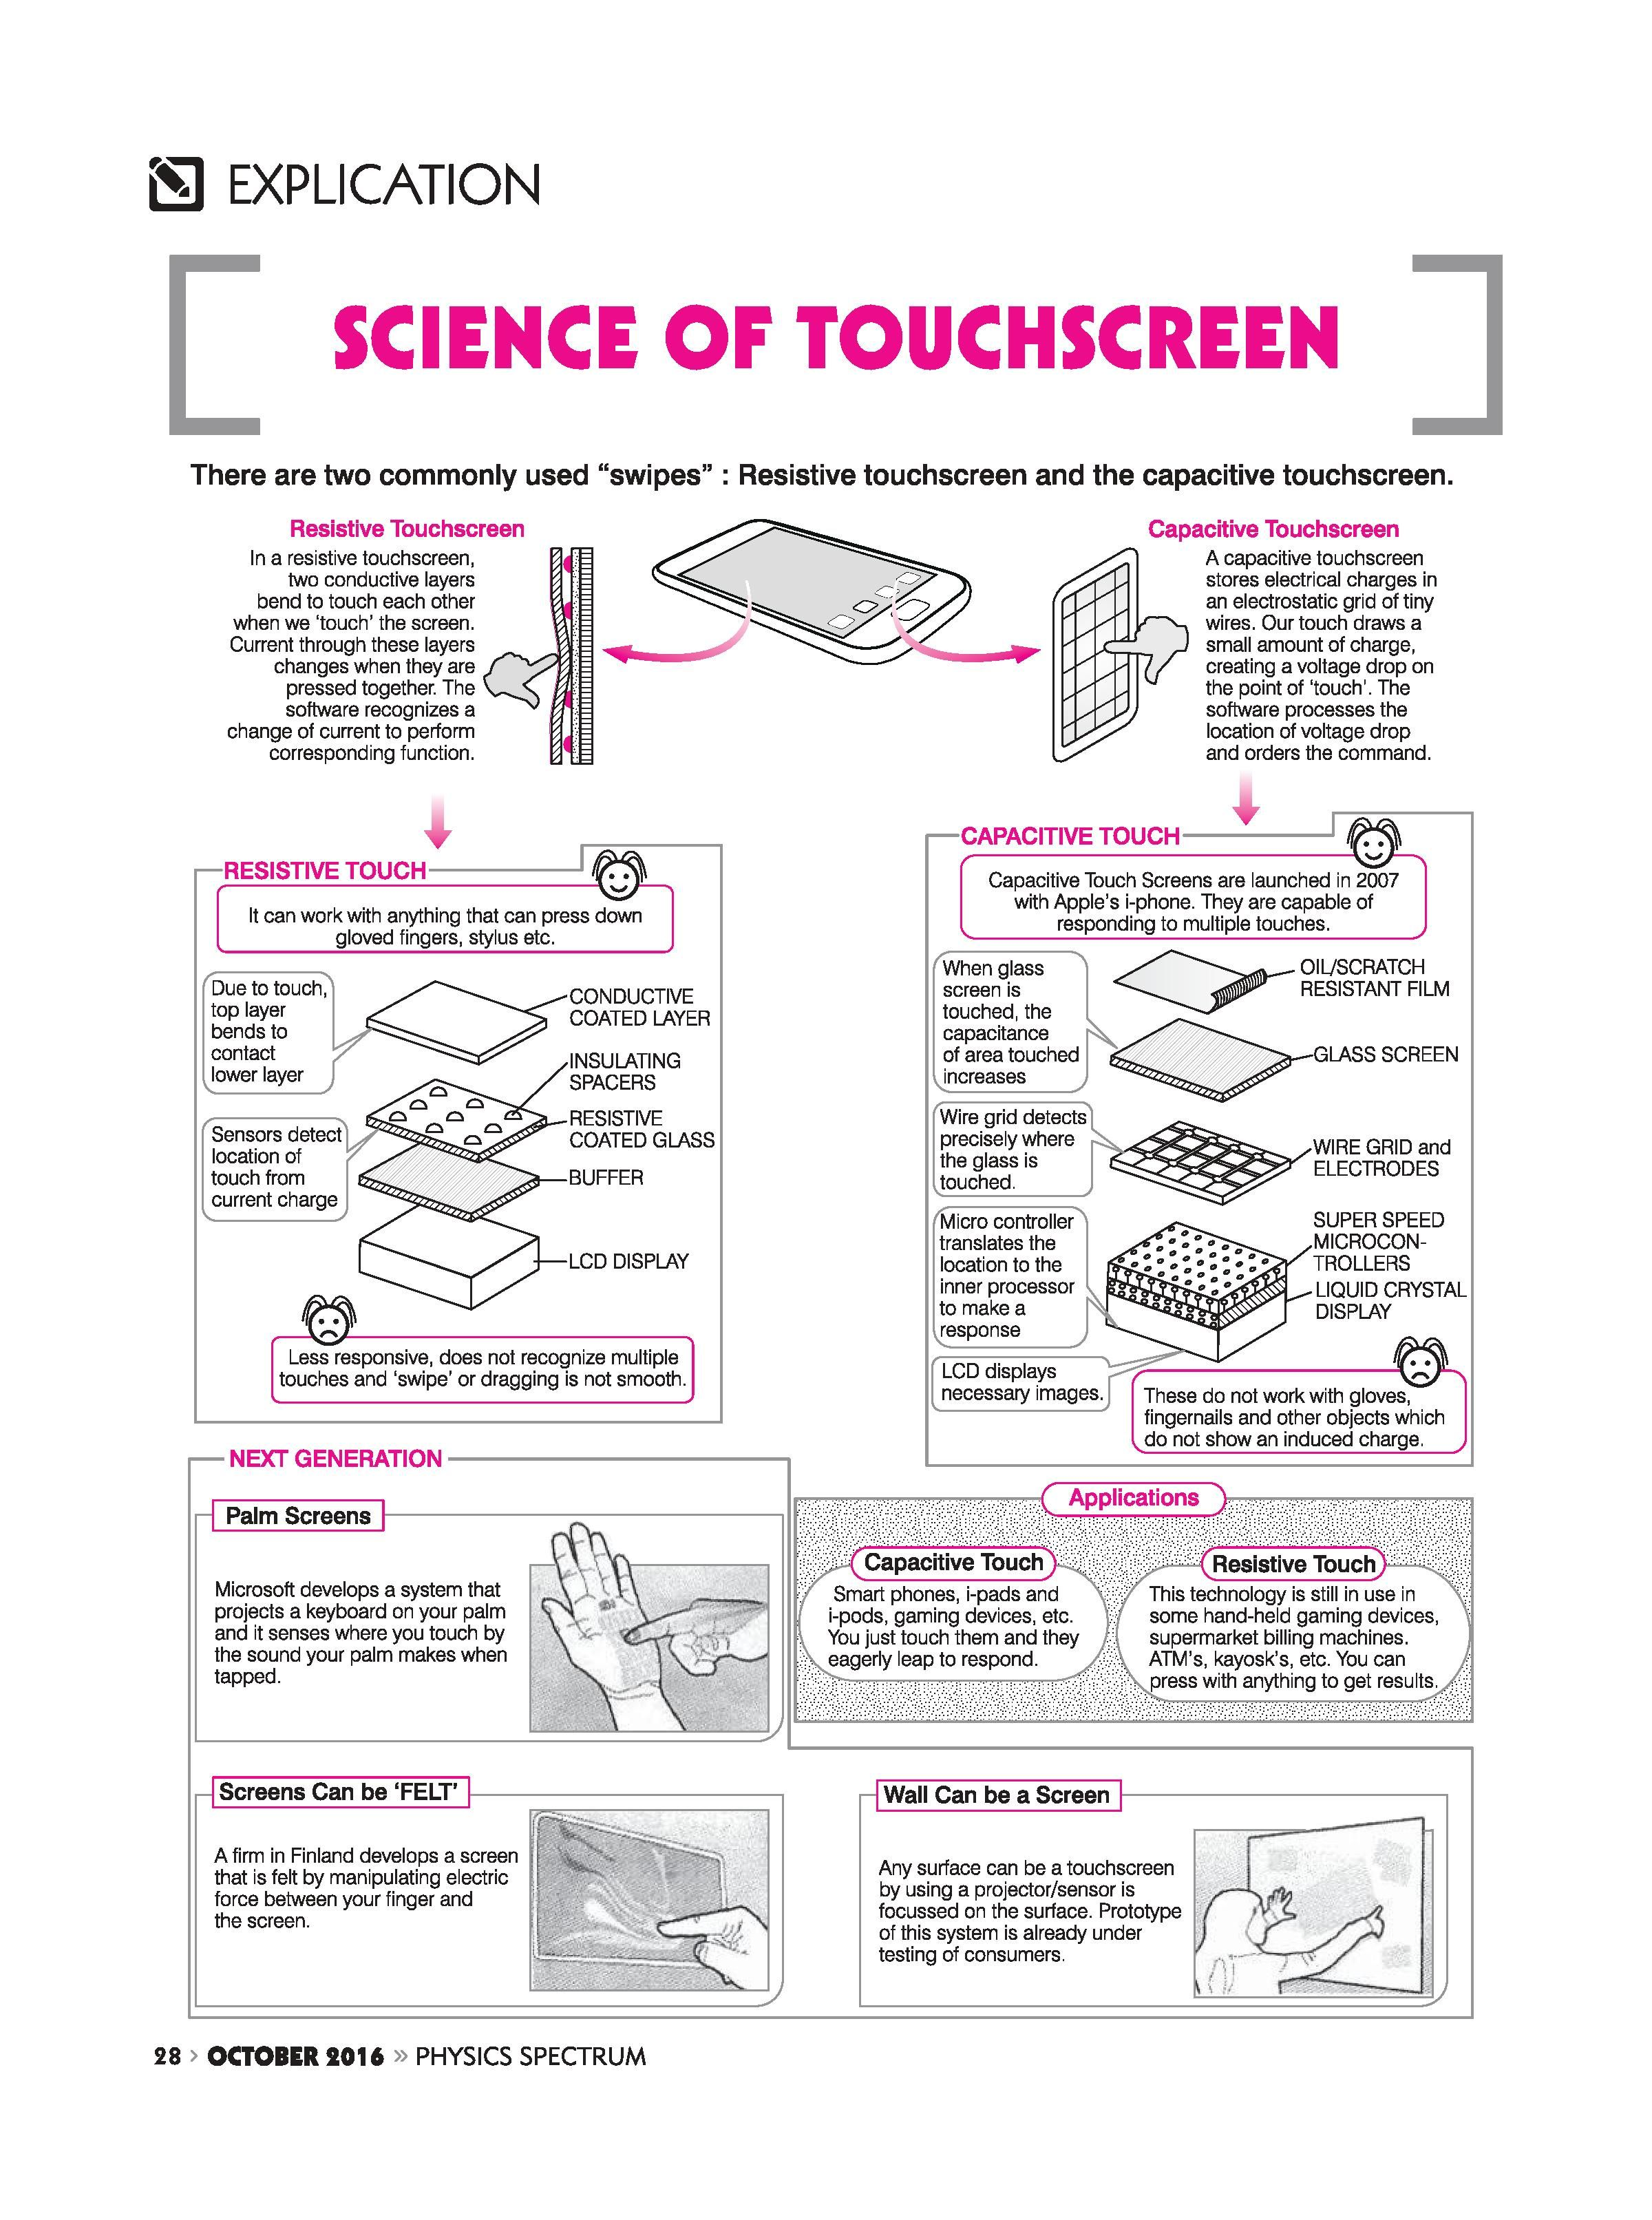 Science Of Touchscreen Explication Arihant Physics Spectrum Magazine Jeemain Jeeadvanced C Physics Concepts Learn Physics Science Notes